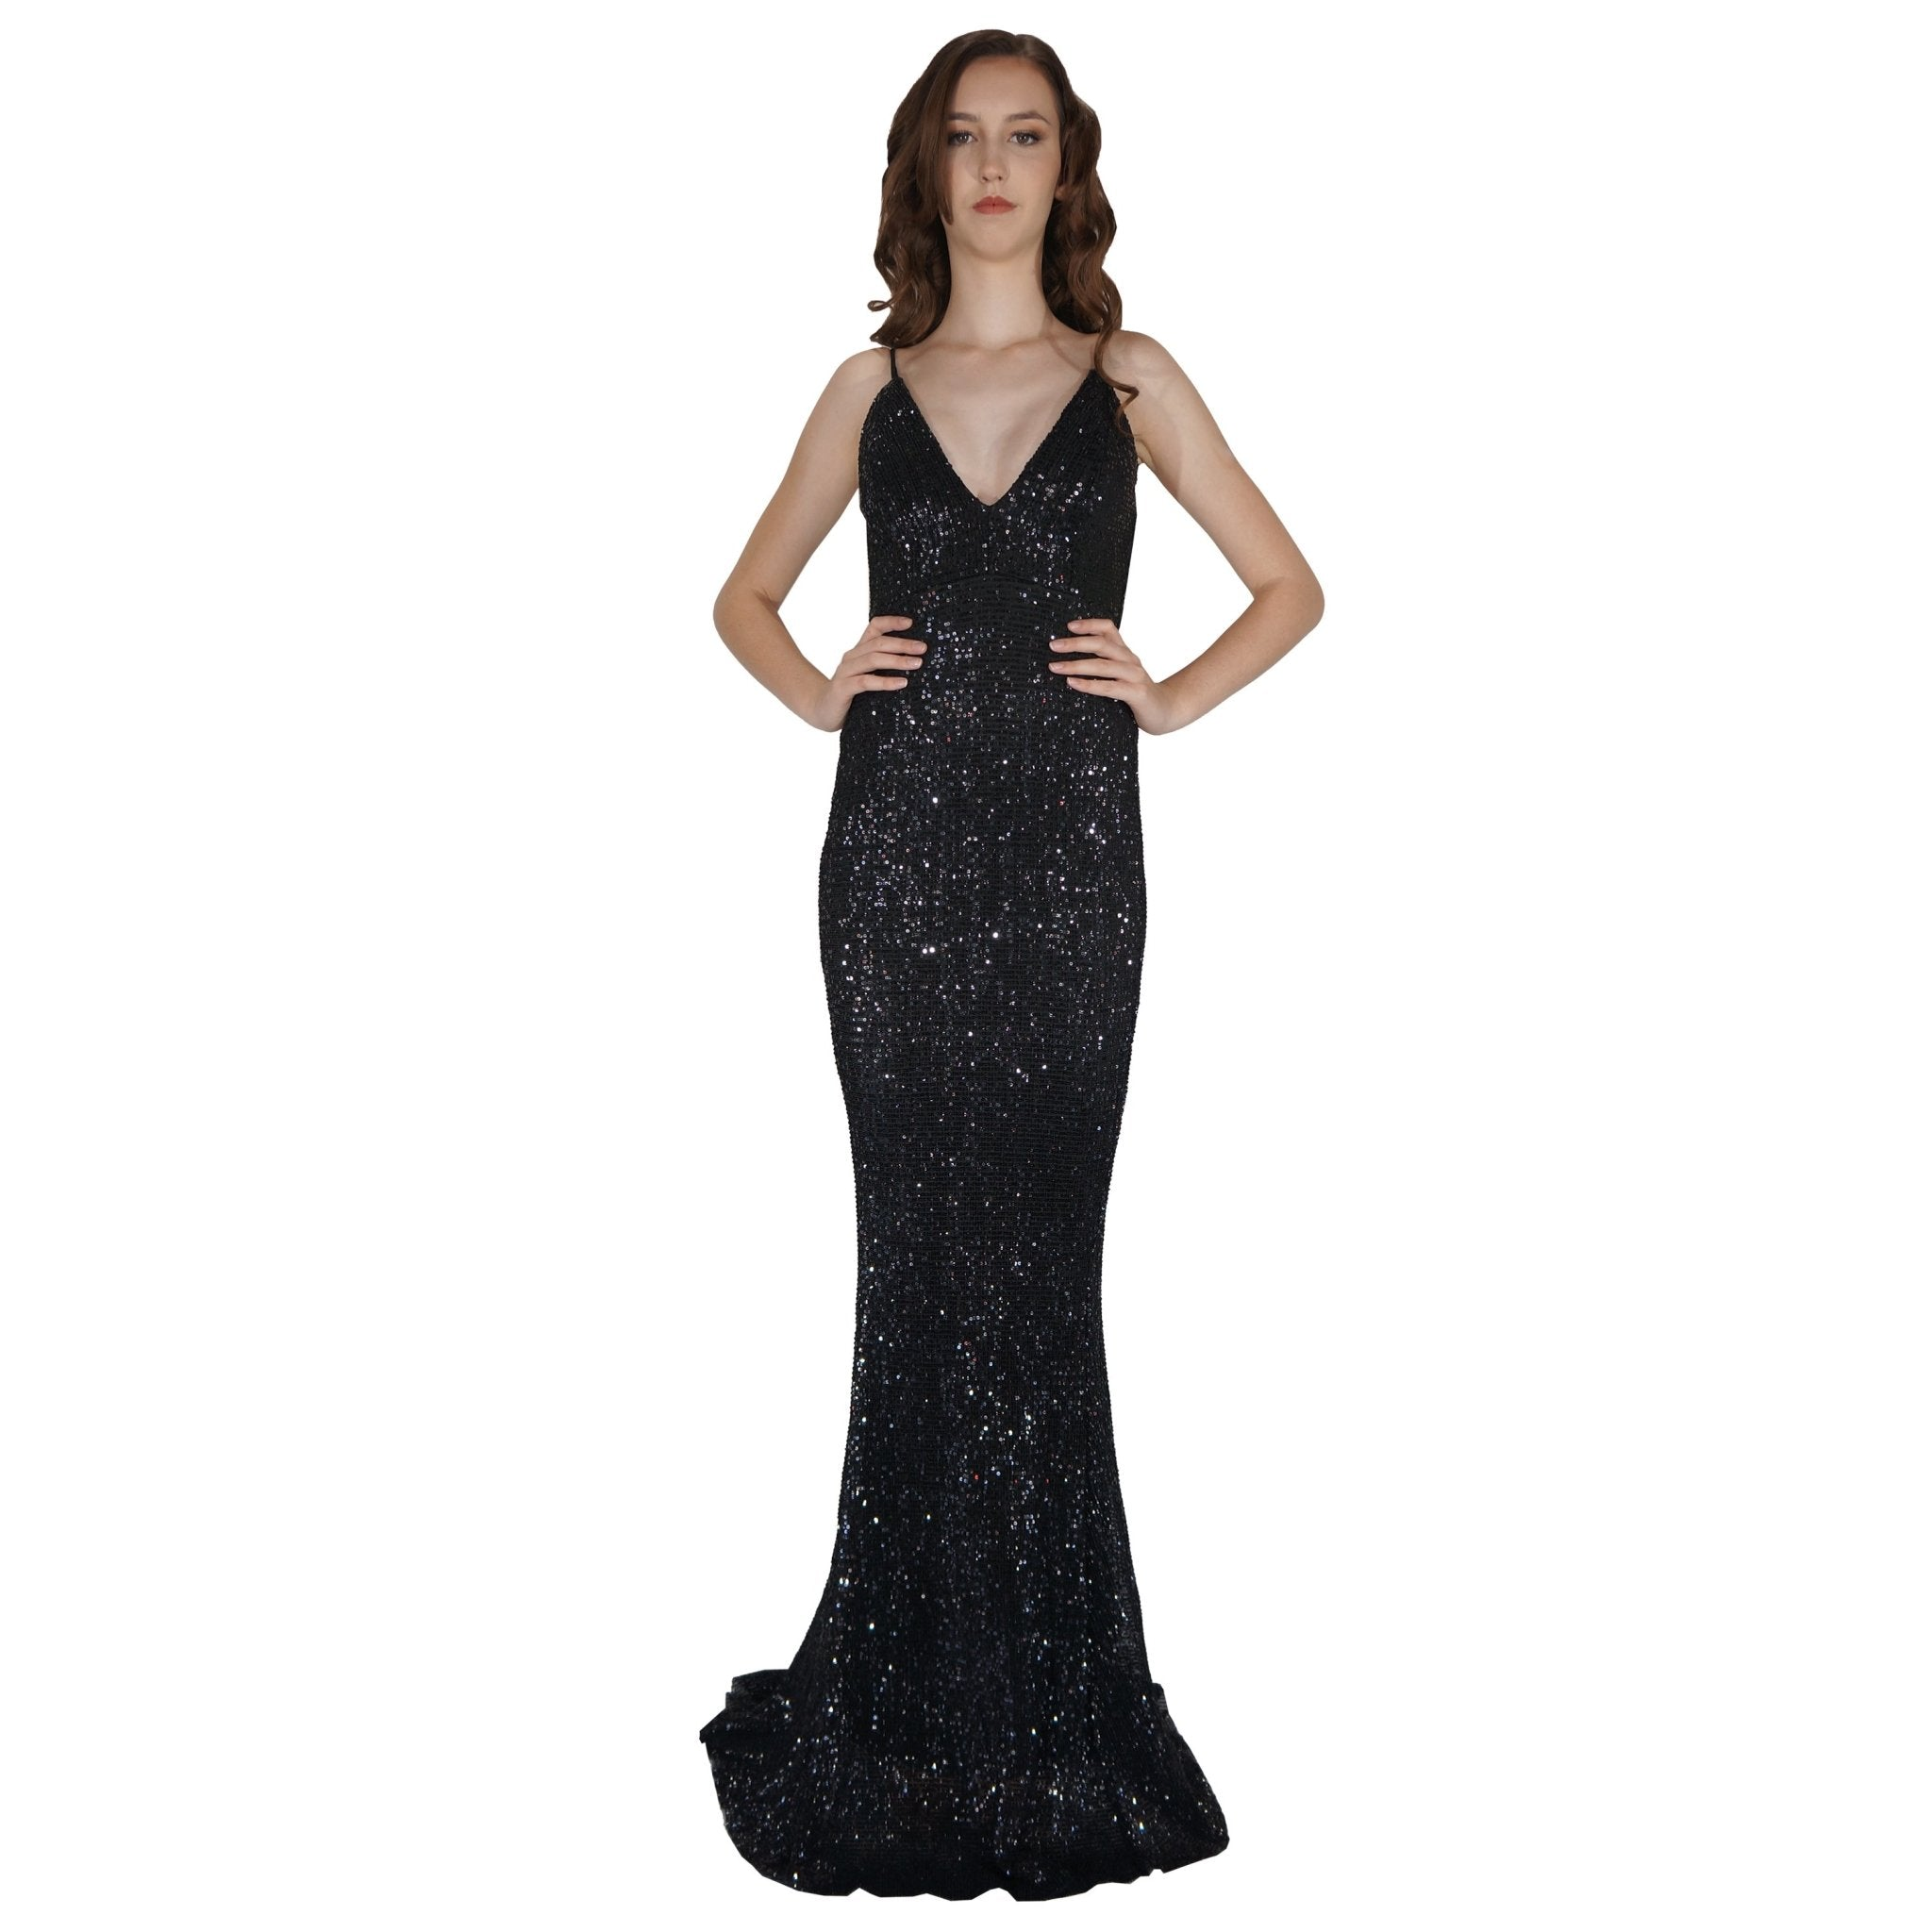 Long Backless Black Sequin Evening Dresses Envious Bridal & Formal